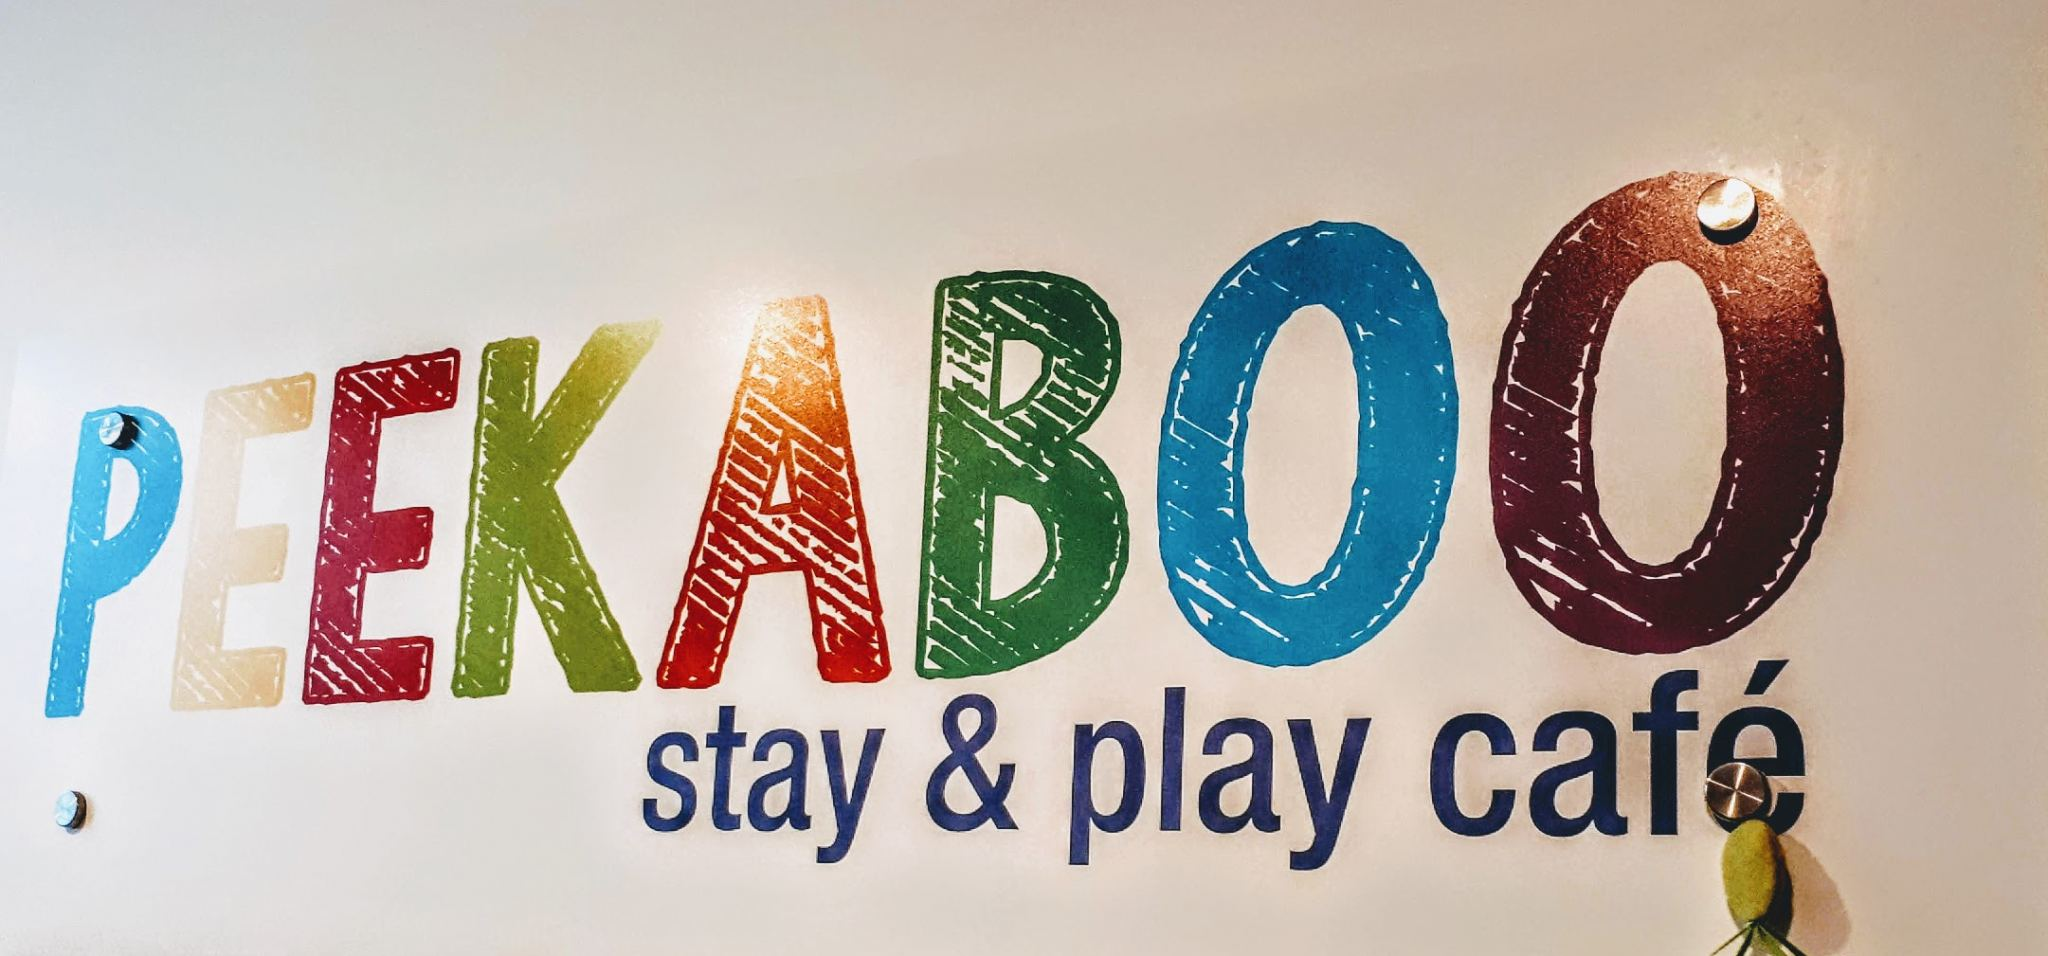 Peekaboo play cafe Santiago